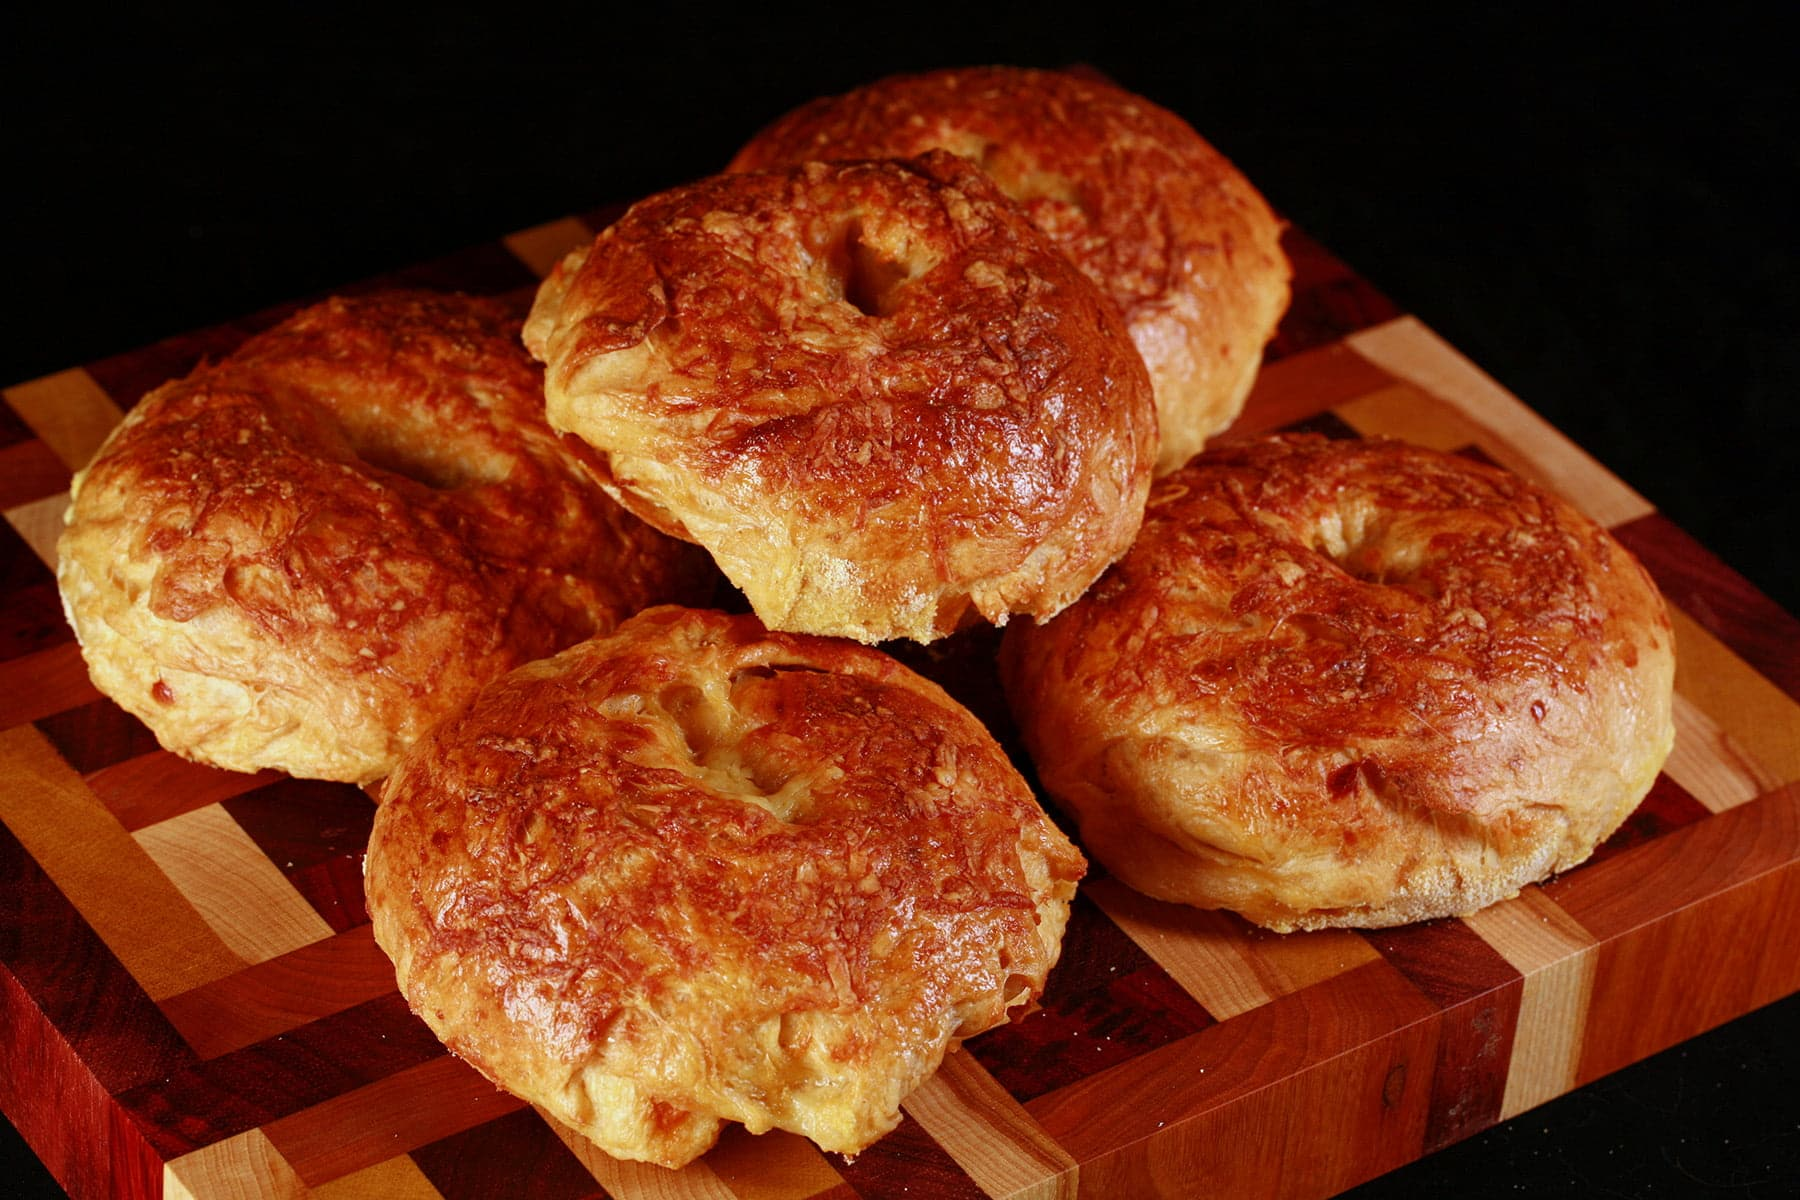 A pile of smoky cheese bagels on a multicoloured cutting board.